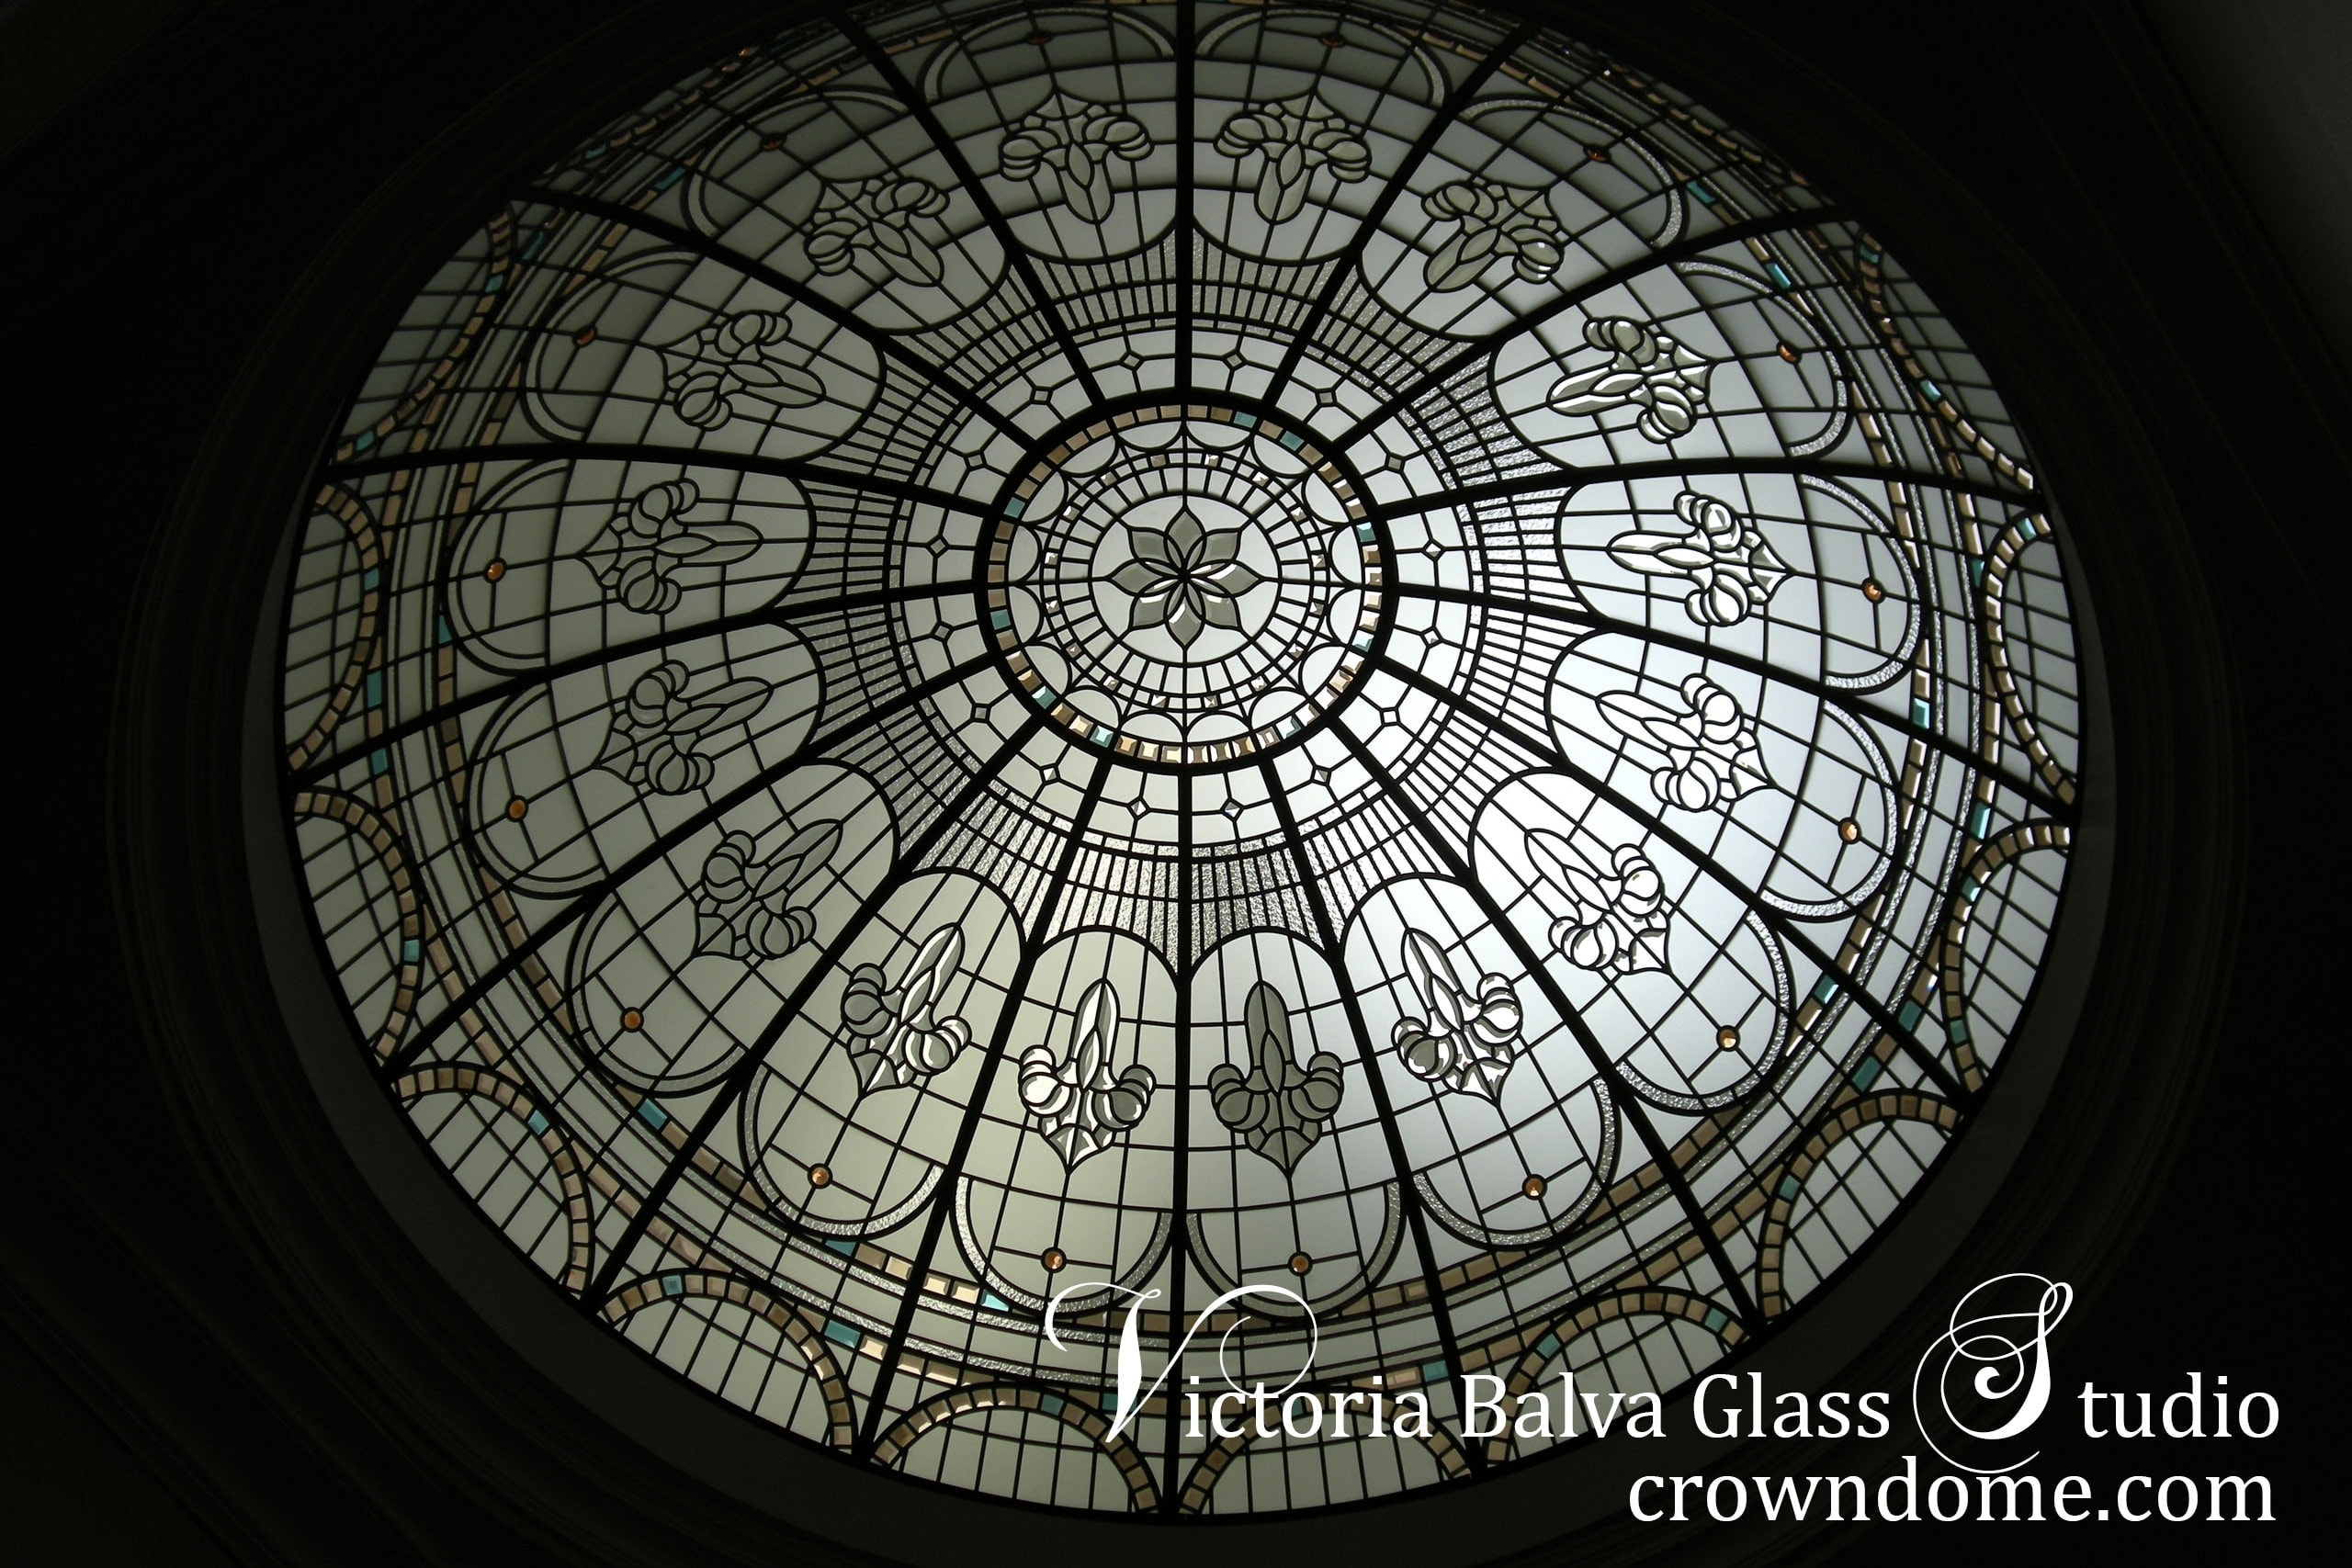 Stained and leaded glass dome ceiling with clear textured glasses, bevelled glass and jewels in classic style for a custom built residence. Luxury foyer interior design idea